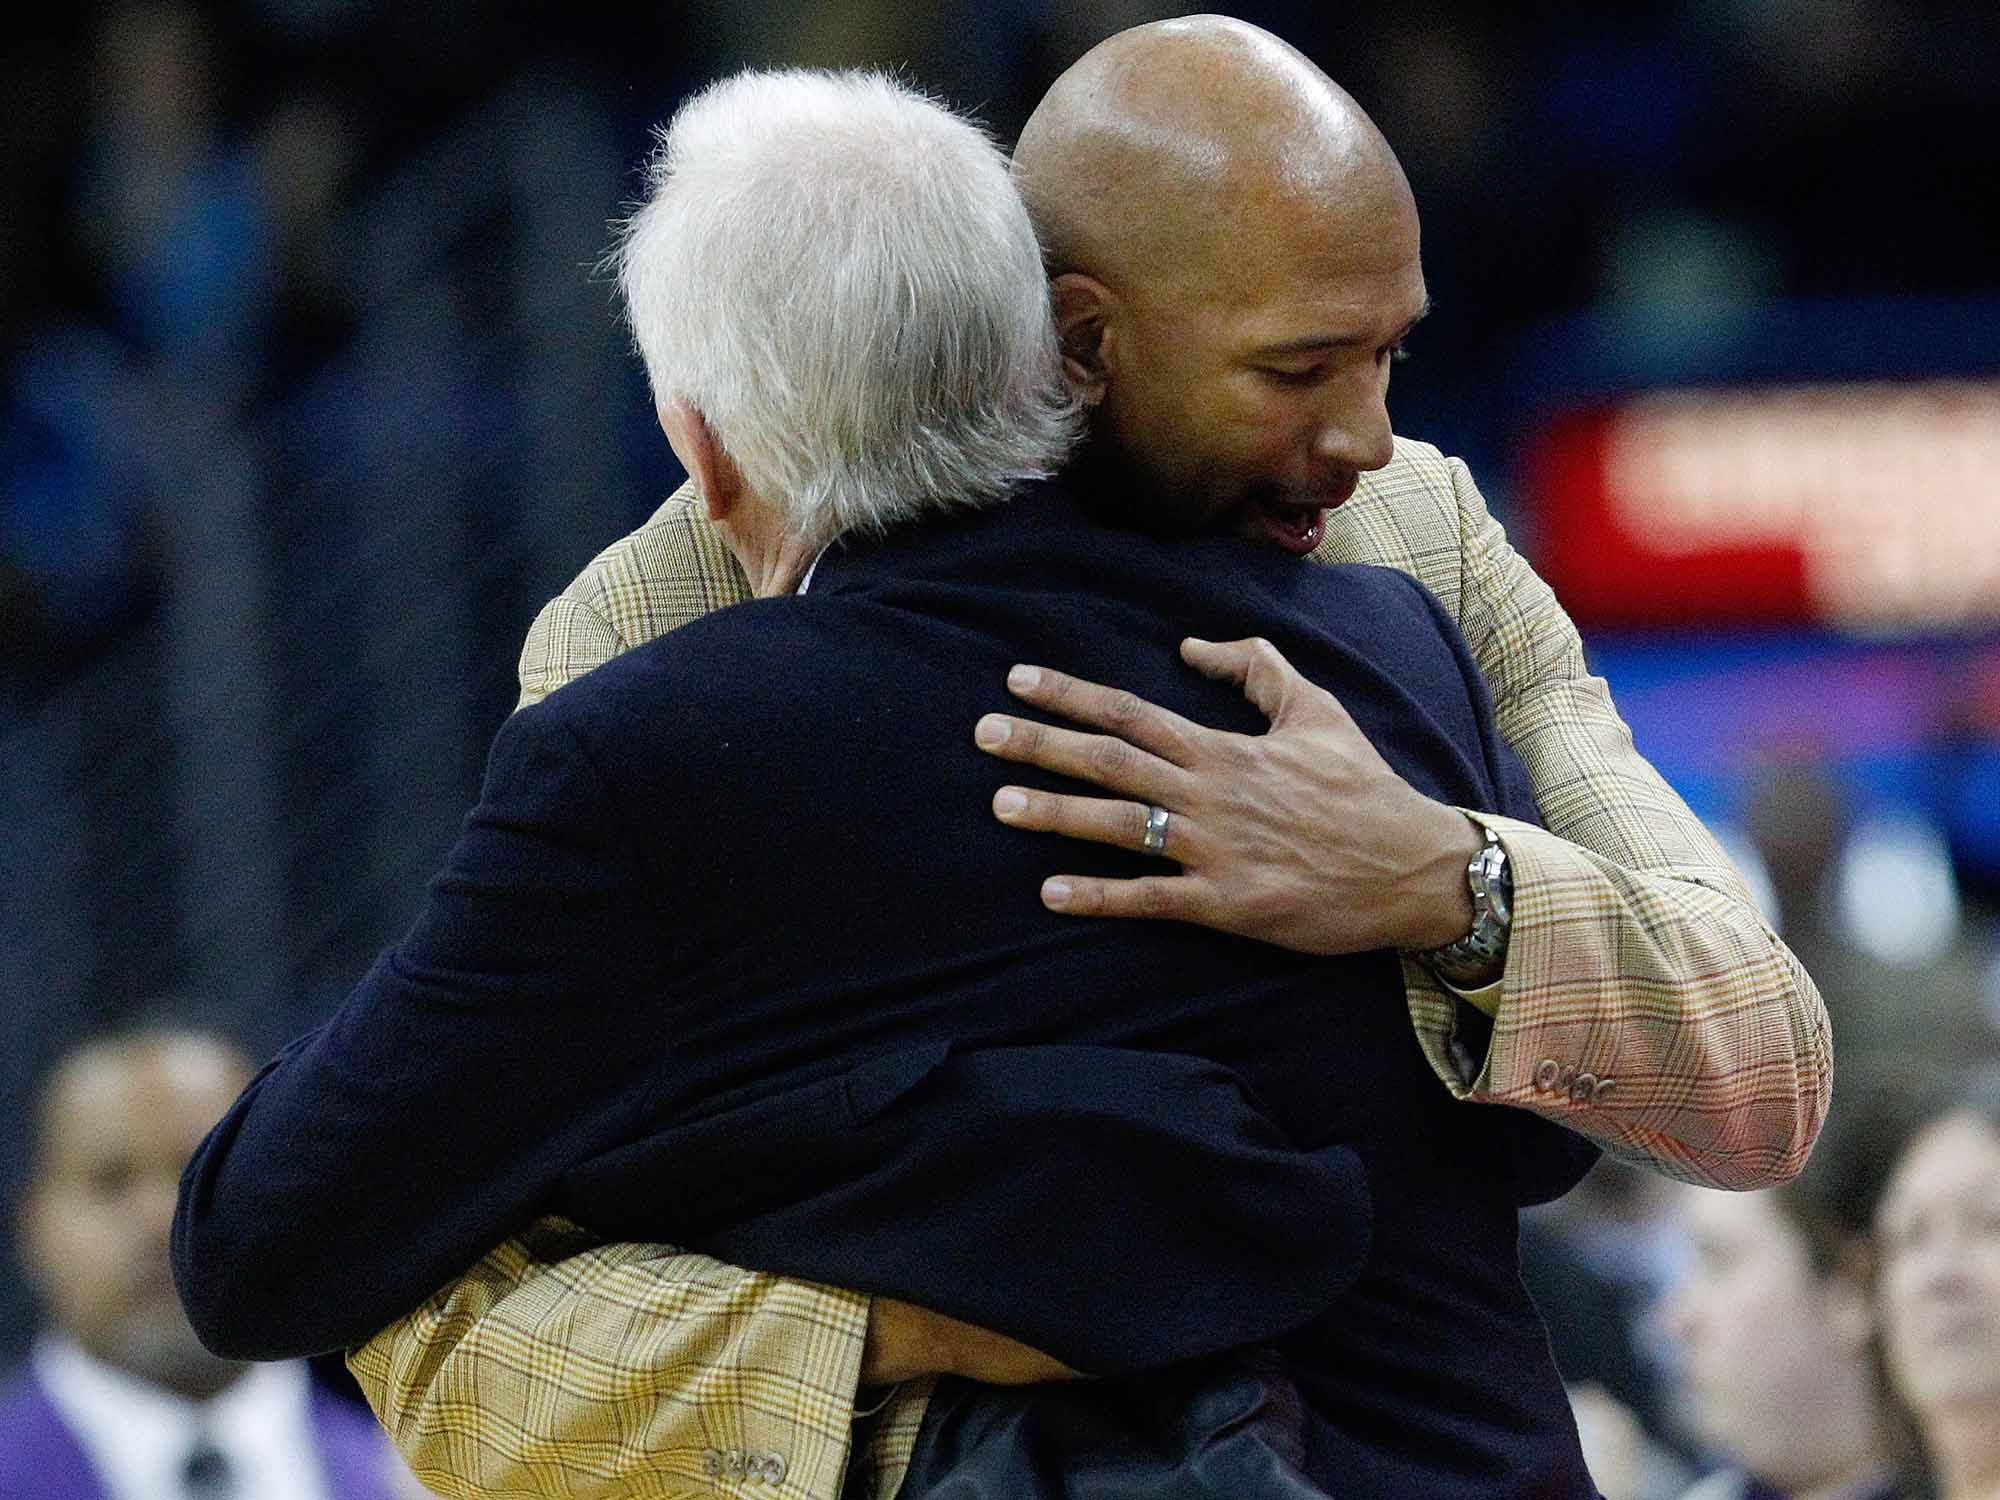 Monty Williams and Gregg Popovich